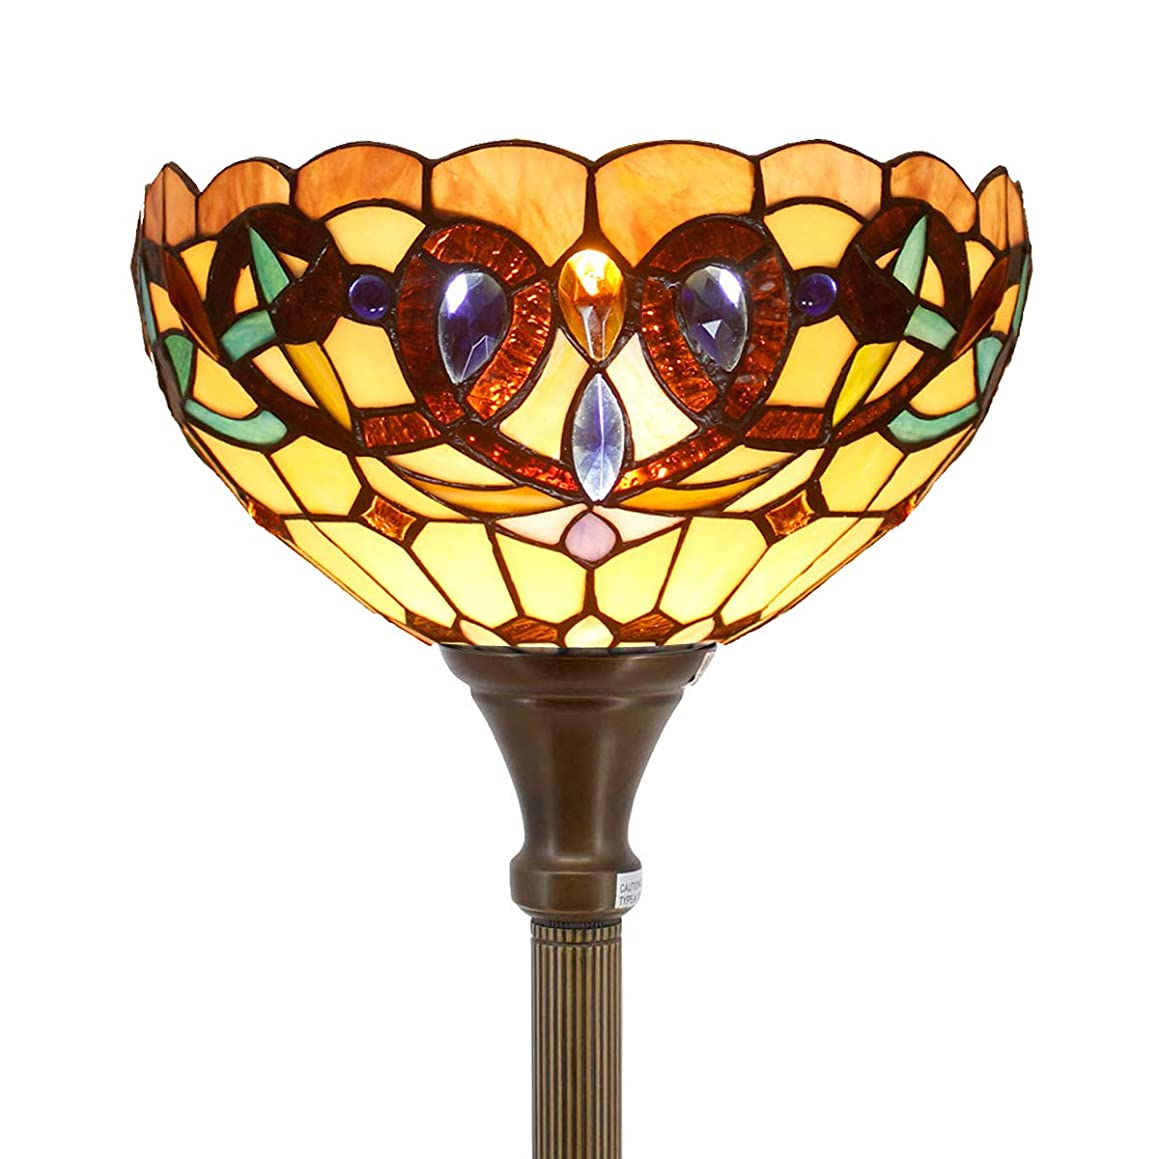 Tiffany Style Torchieres Floor Lamp Table Desk Standing Lighting Serenity Victorian Wide 12 Tall 66 Inch Stained Glass Lampshade for Living Room Bedroom Antique Set S021 WERFACTORY